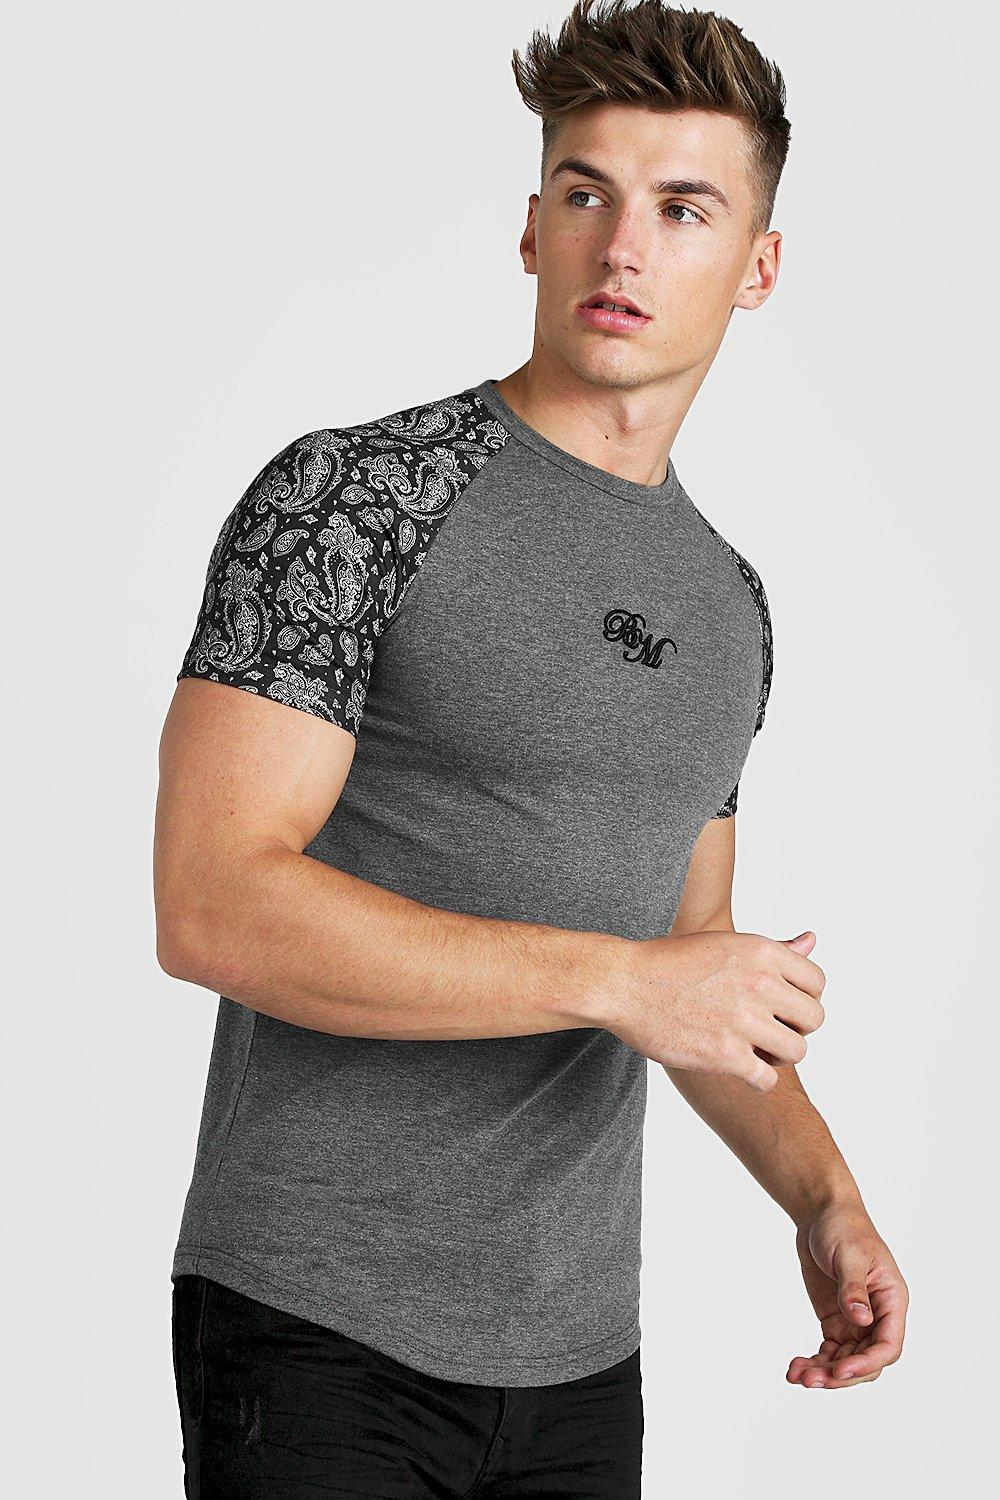 BM Muscle Fit Embroidered Paisley Print T Shirt | boohoo